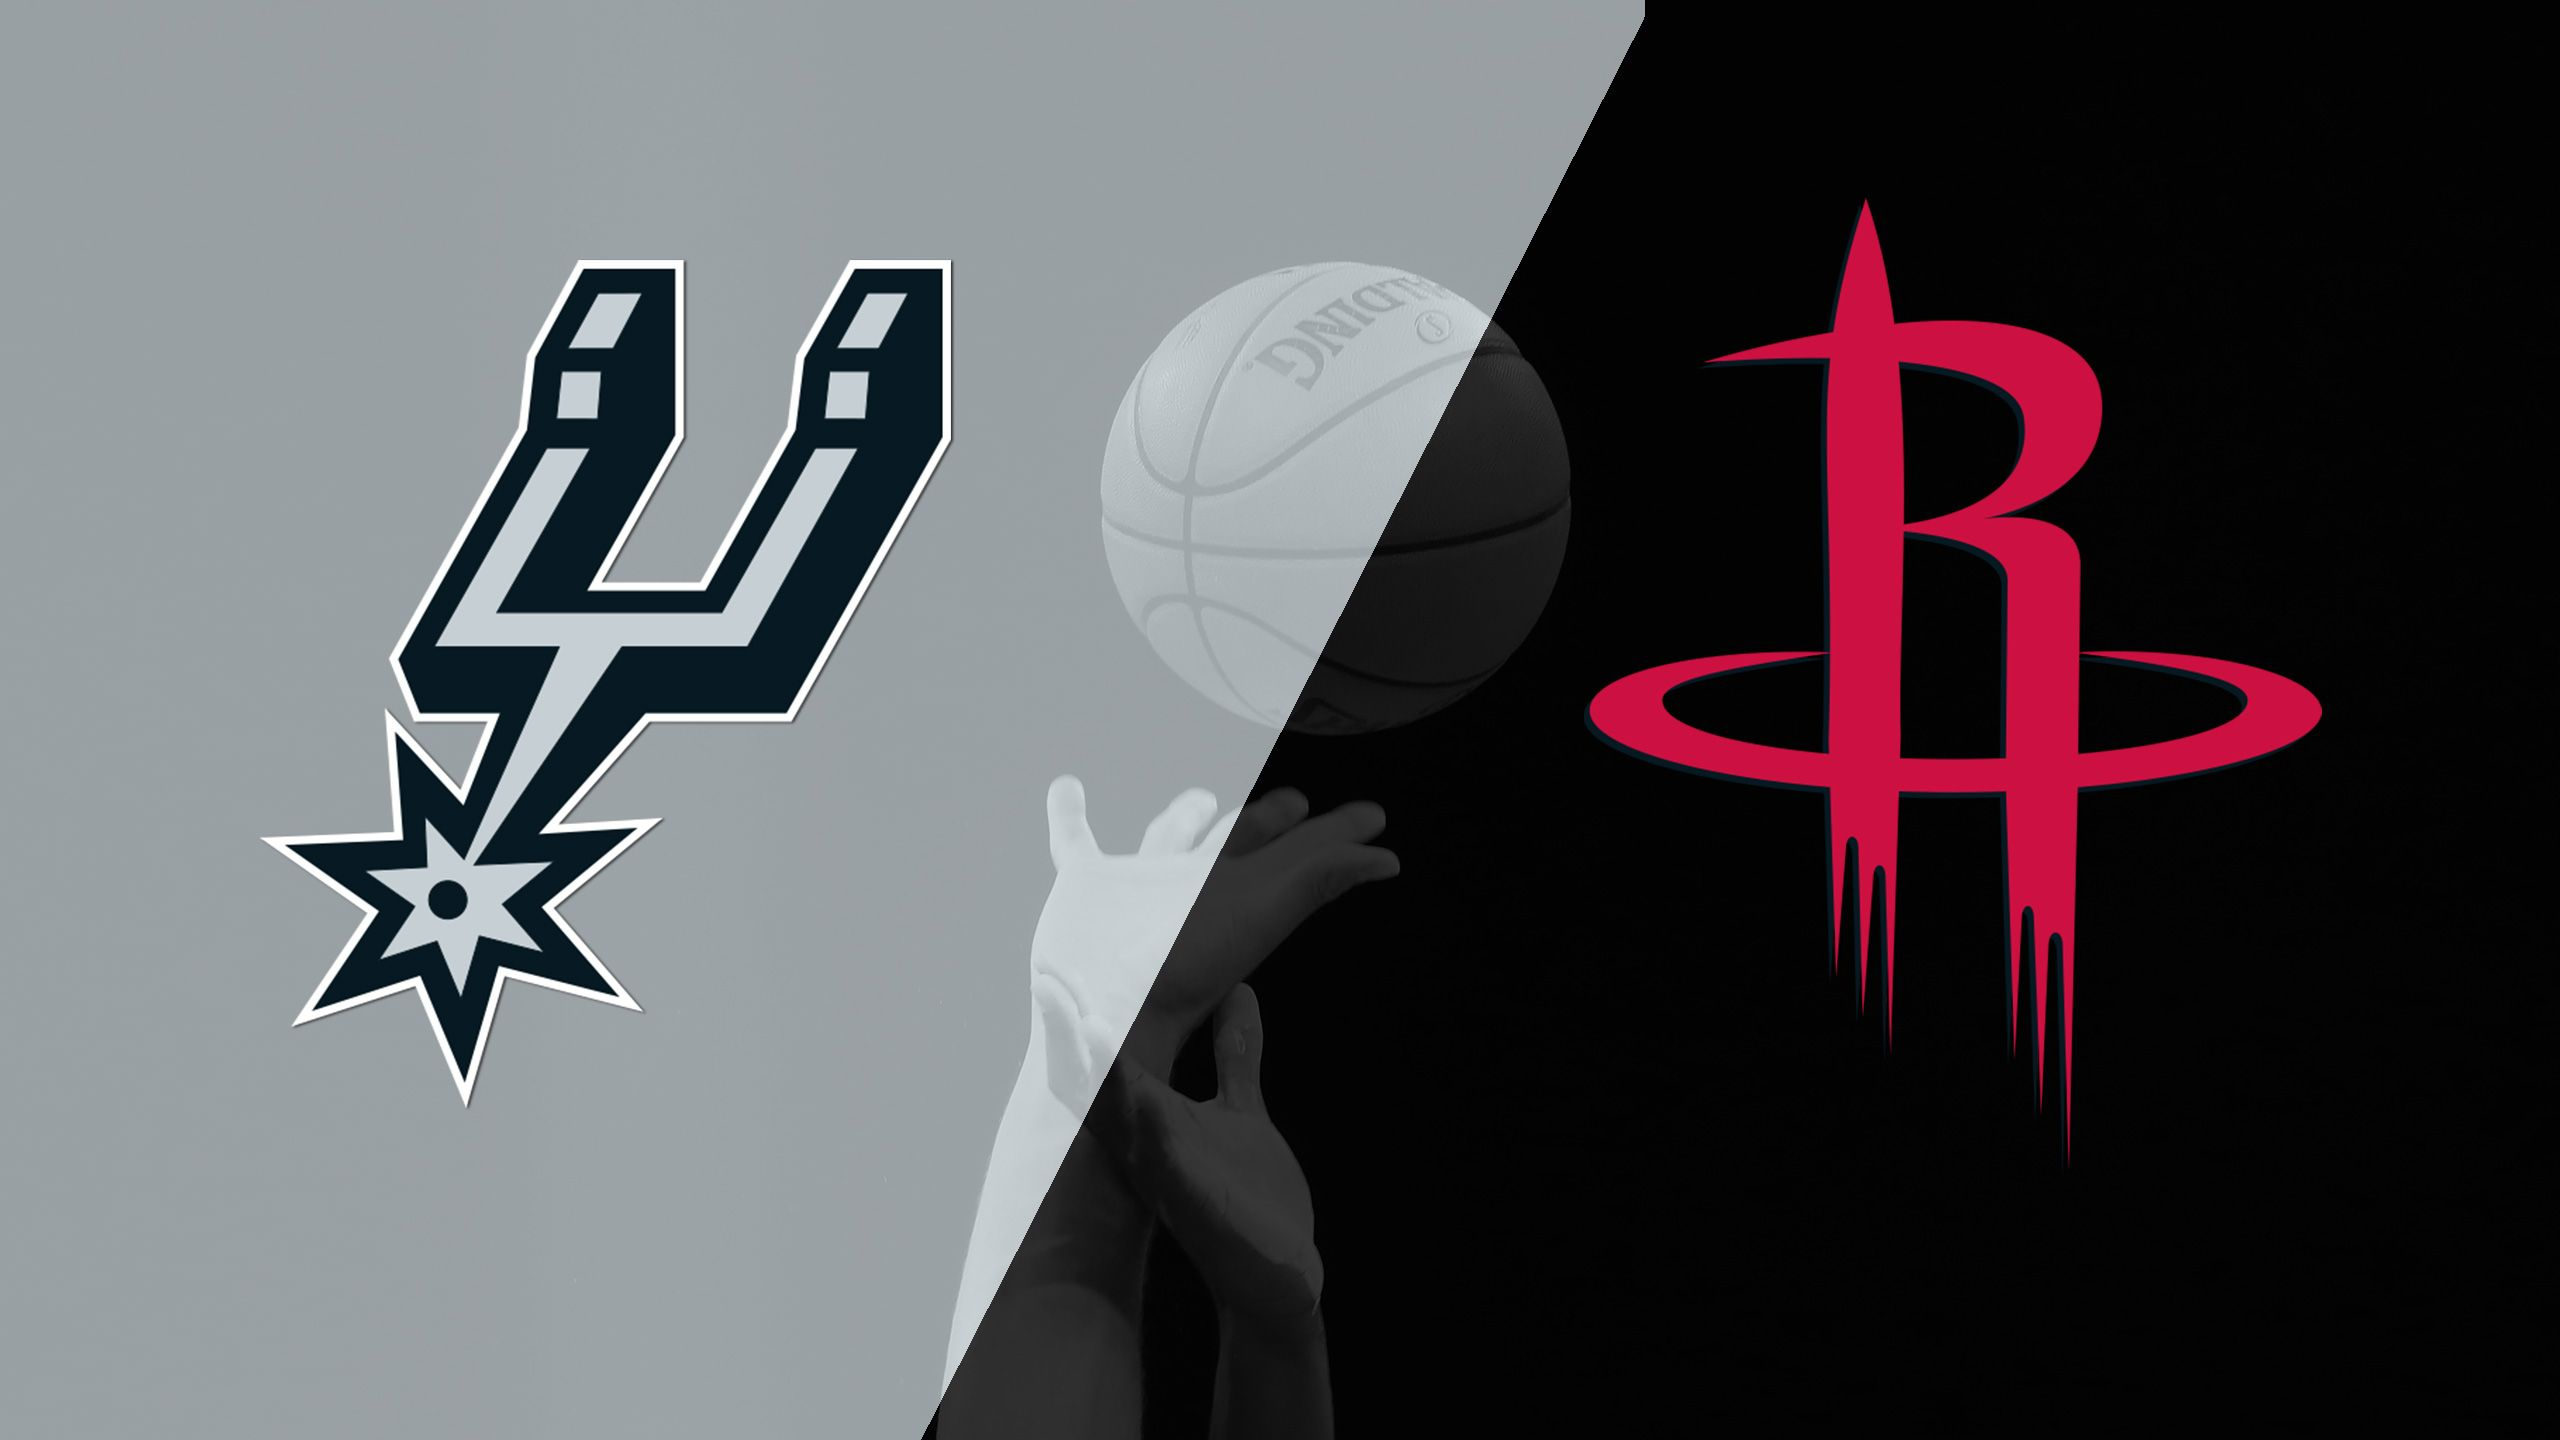 In Spanish - San Antonio Spurs vs. Houston Rockets